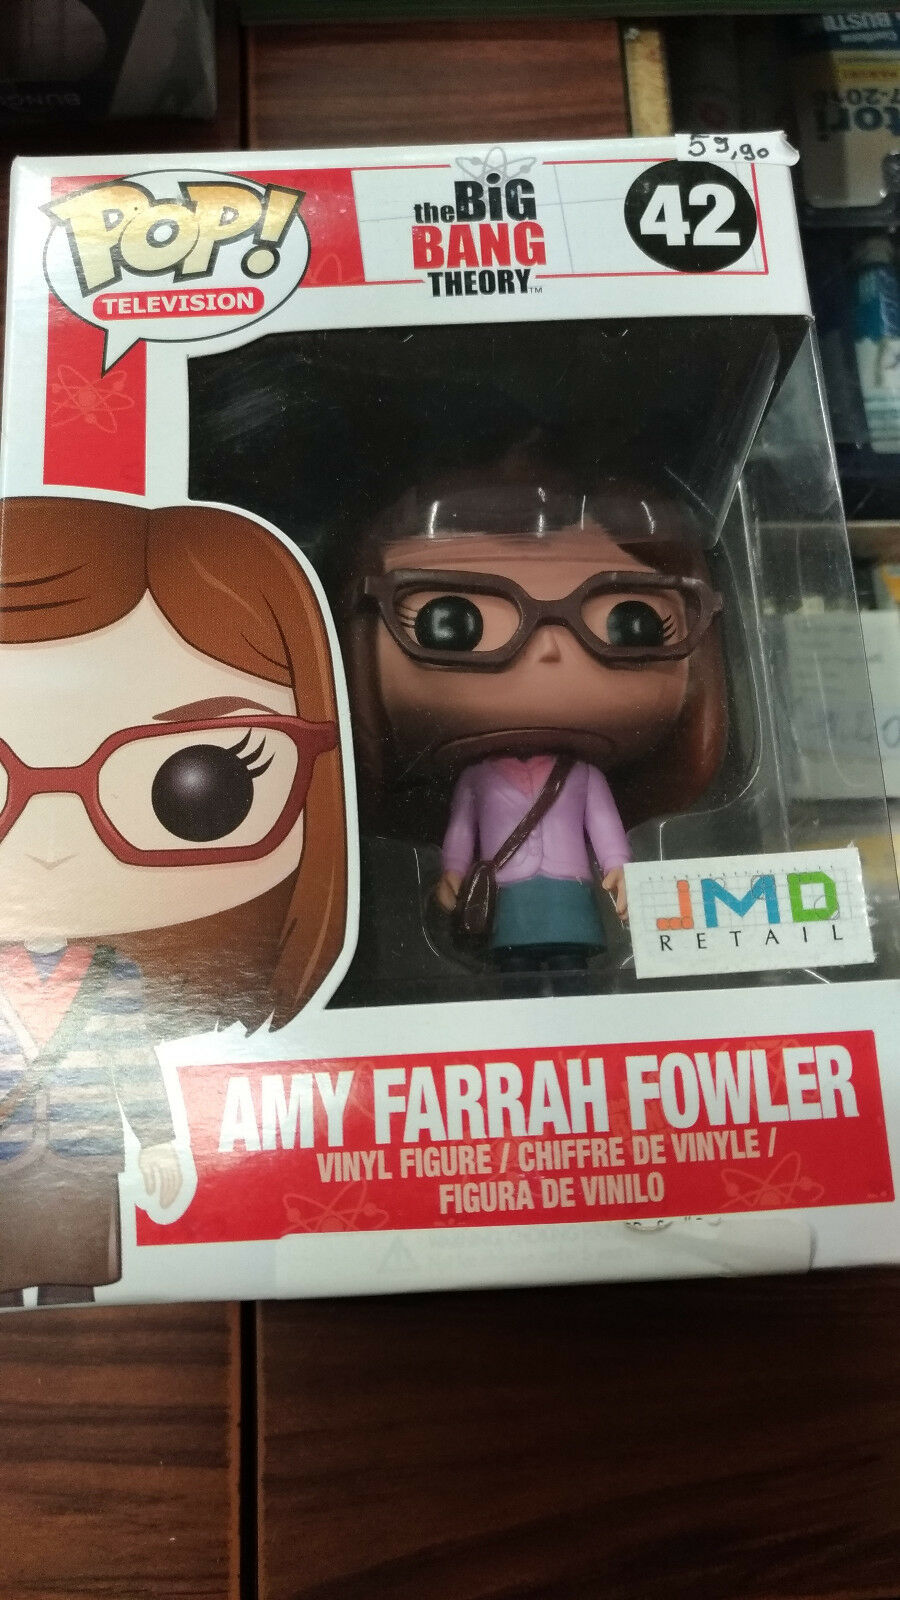 FUNKO - BIG BANG THEORY Amy Farrah Fowler  42 - JMD Retail Exclusive NEW RARE